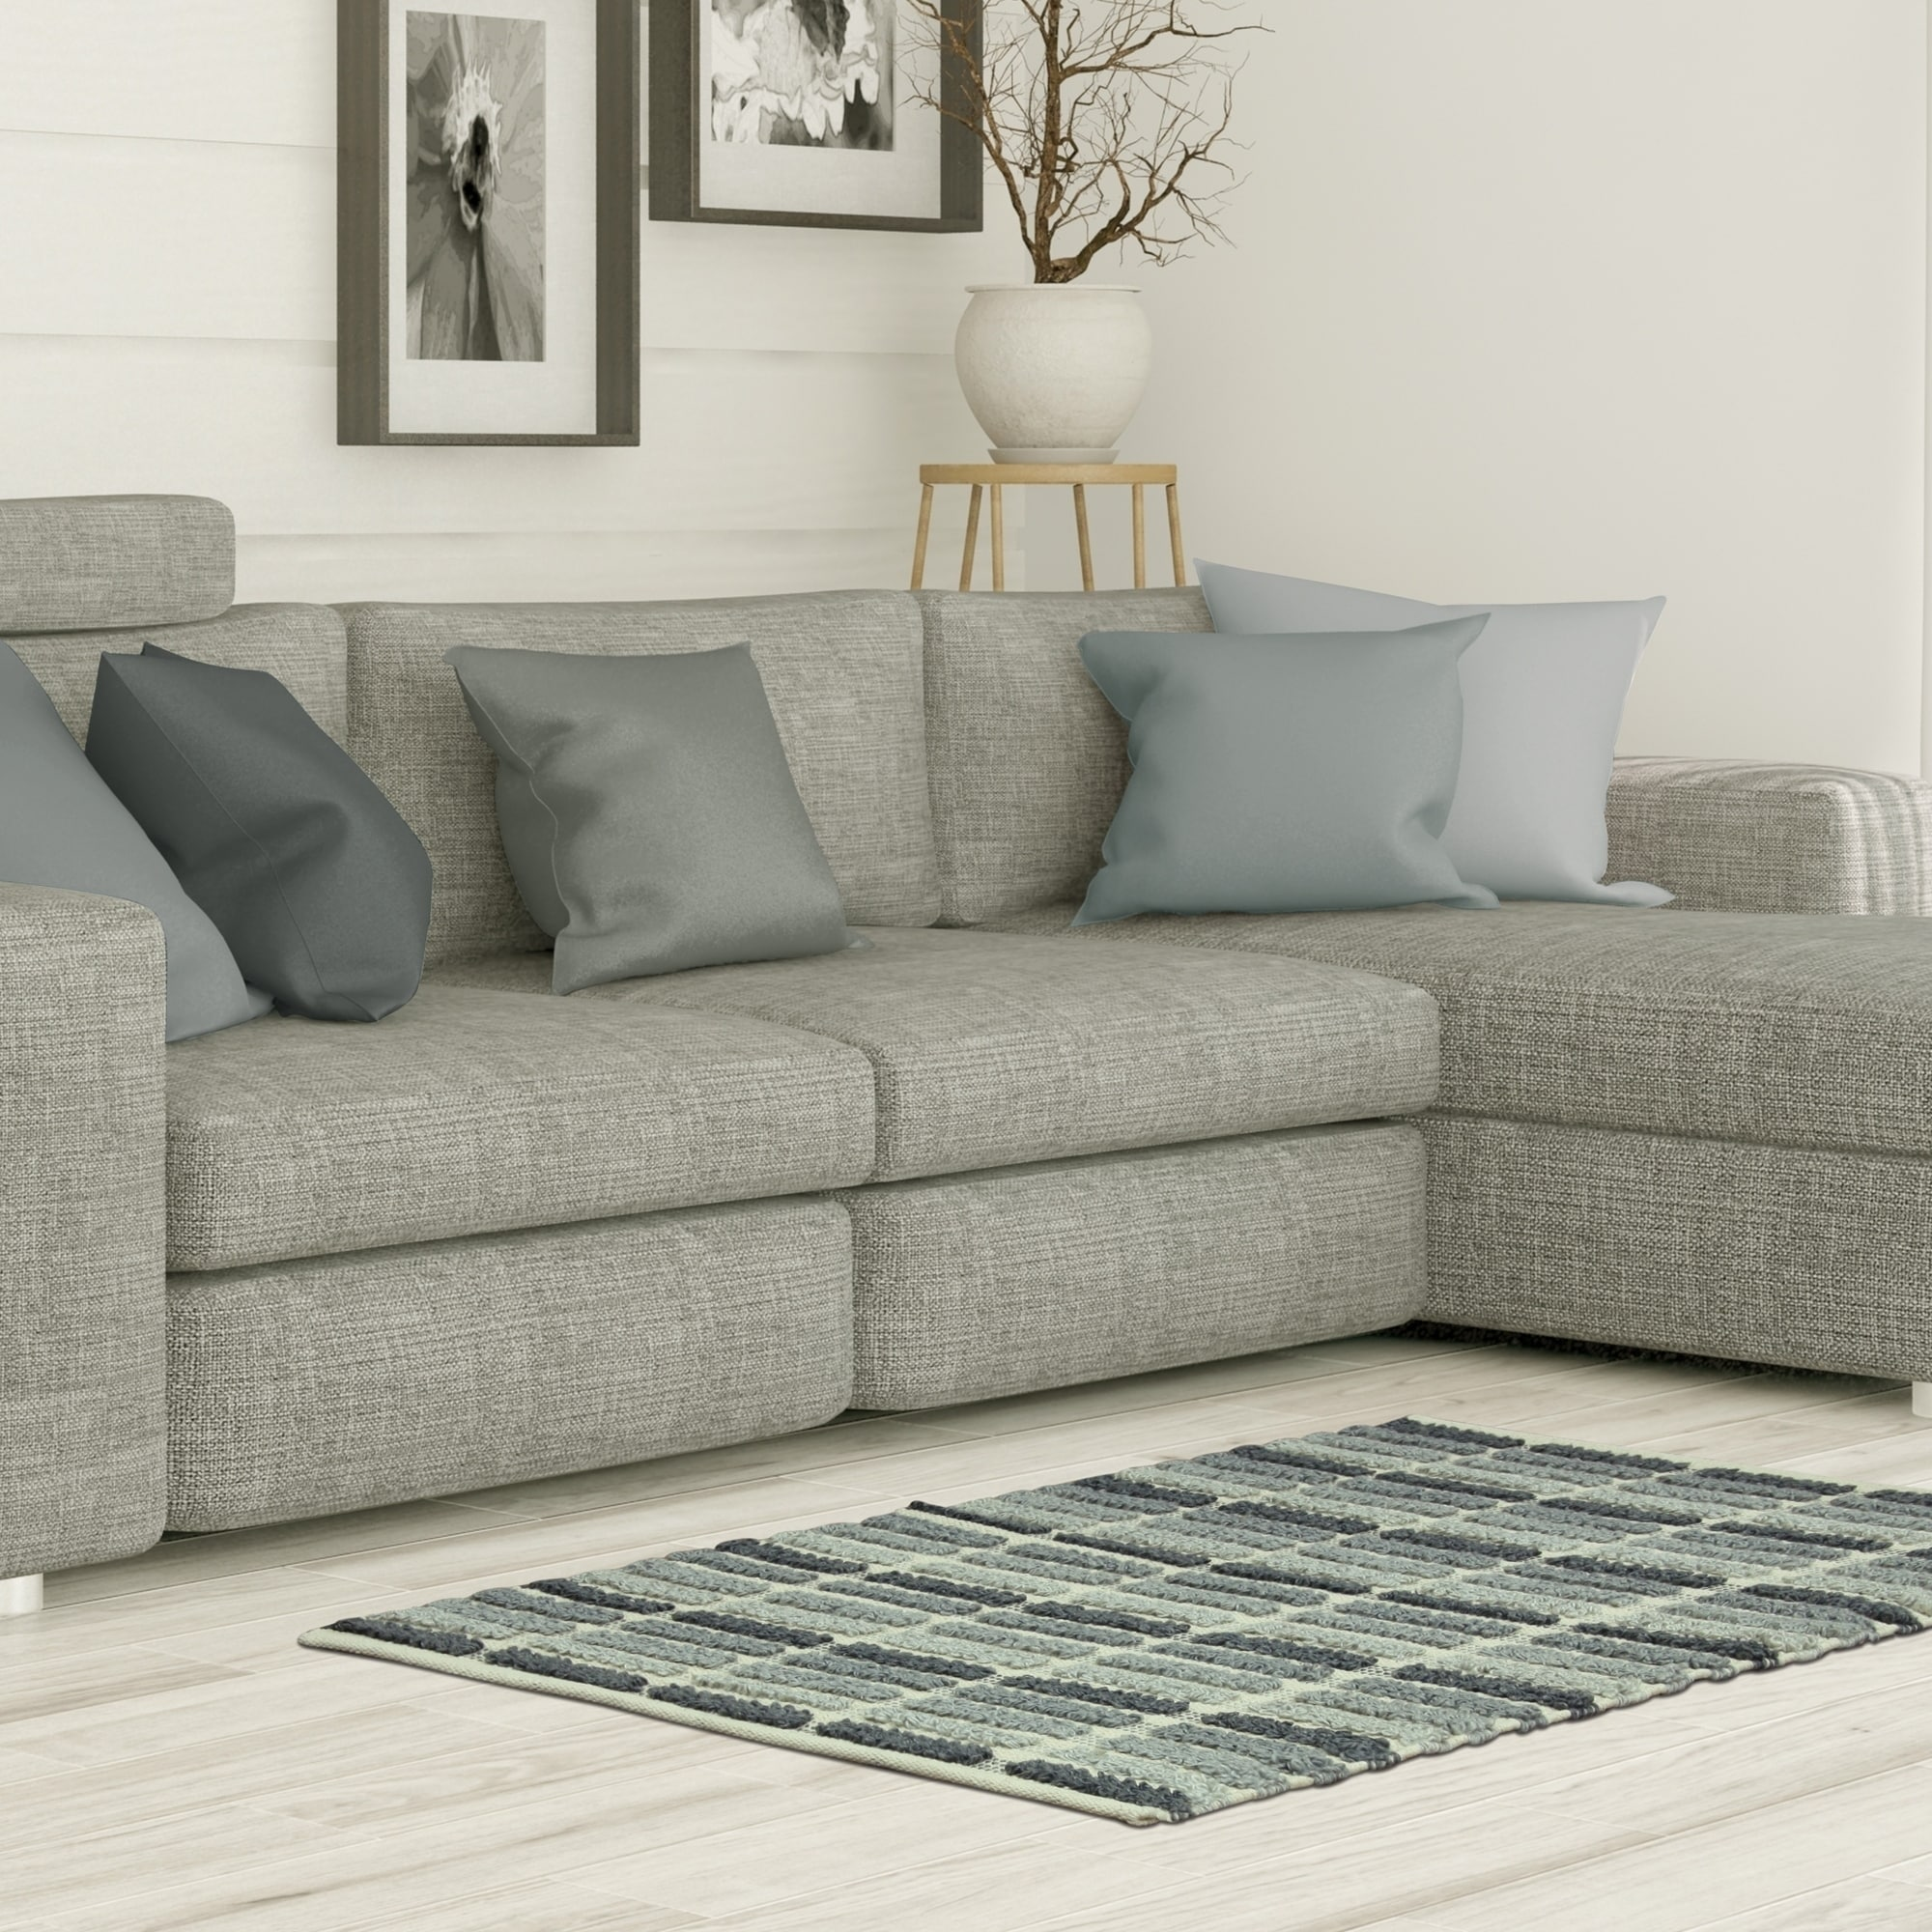 Jessica Simpson woven Wynne Gray Natural accent rug - 2'3...